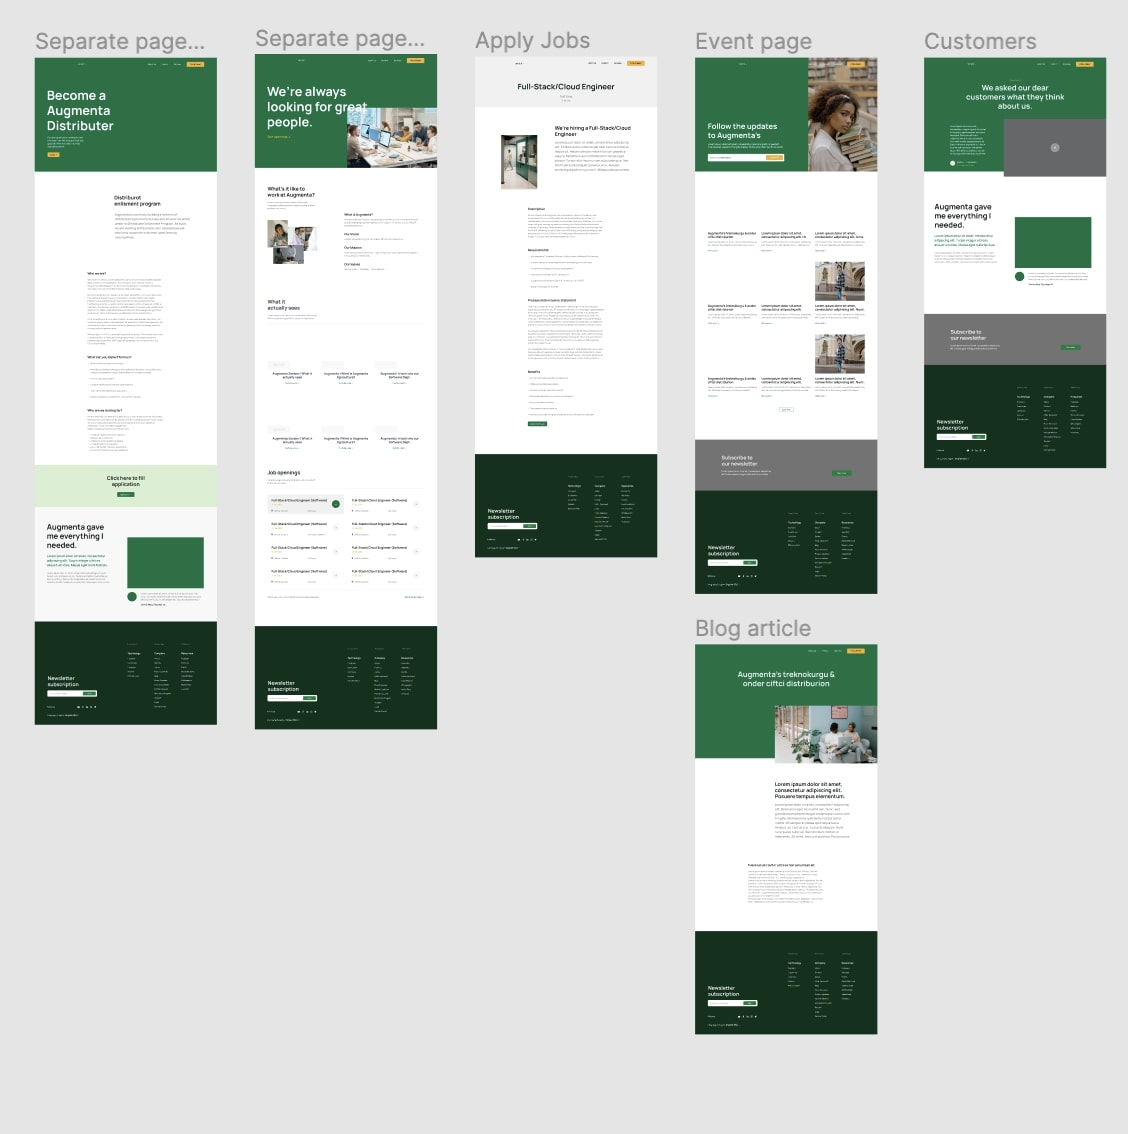 Website template example showing how different landing pages would appear.